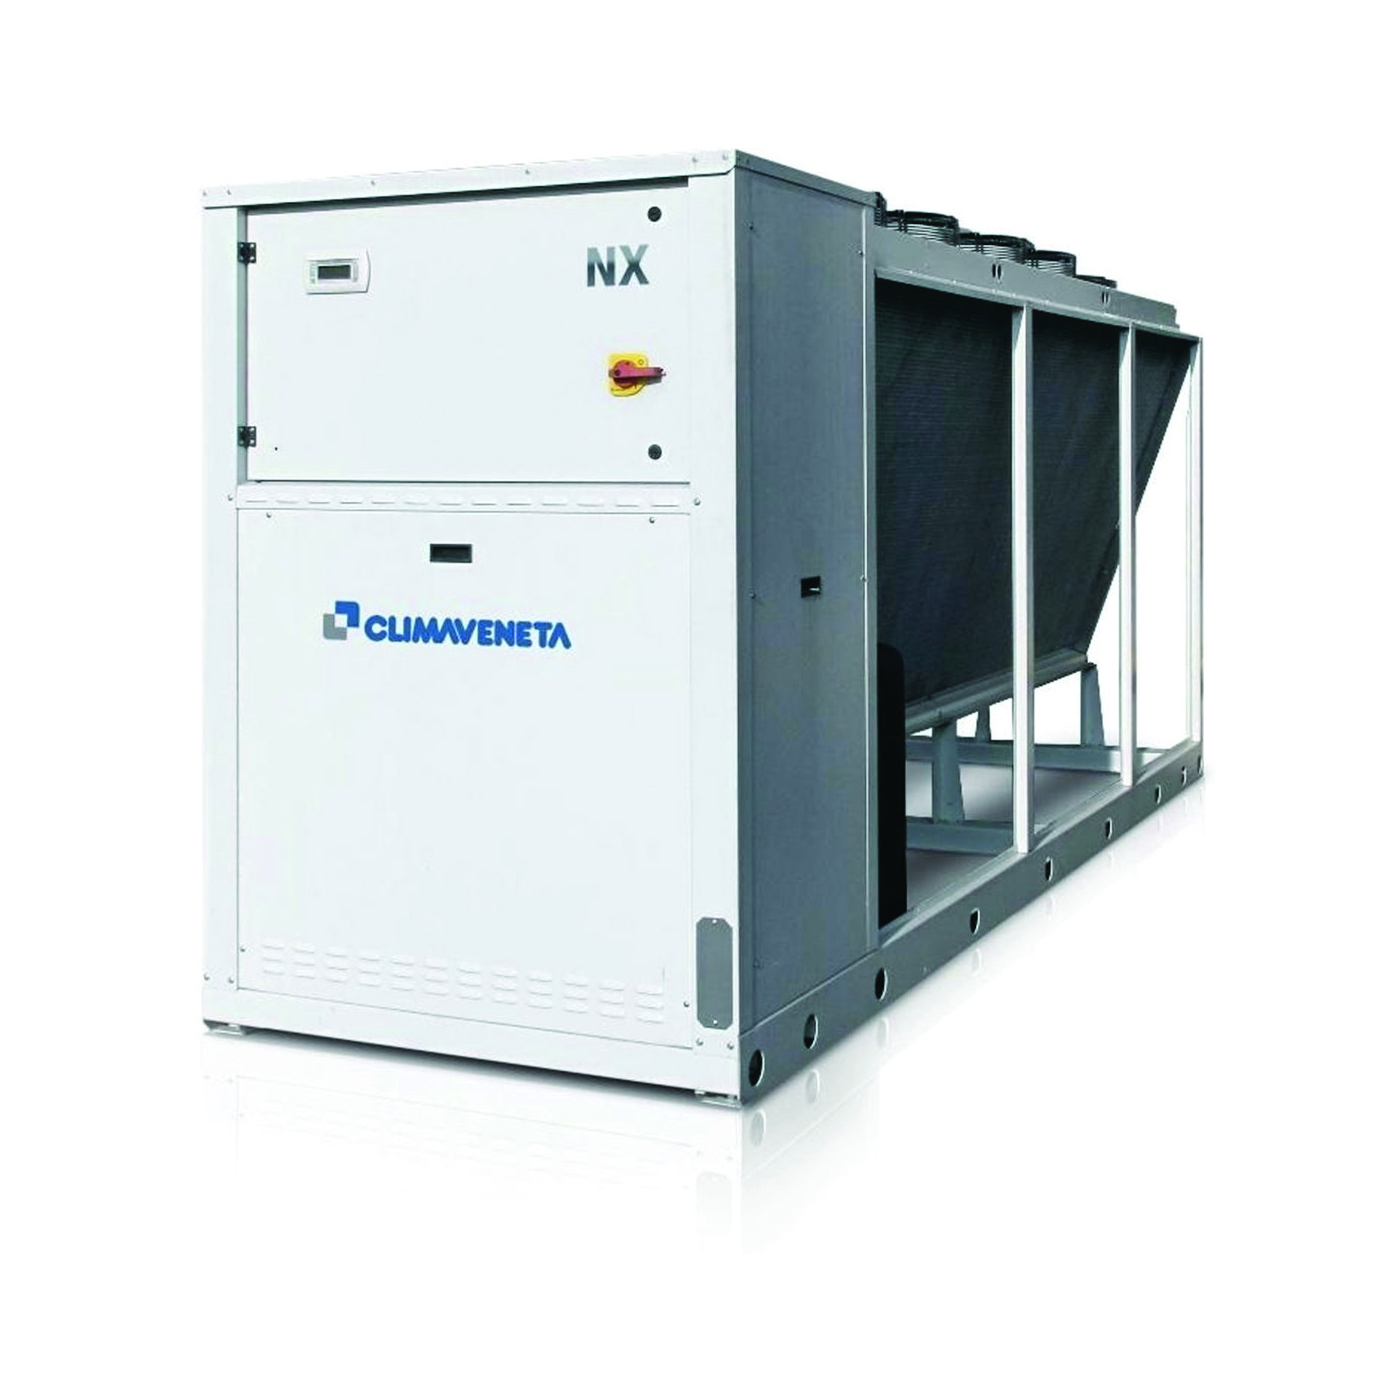 nn039-climaveneta-nx-aircooled-scroll-chillers